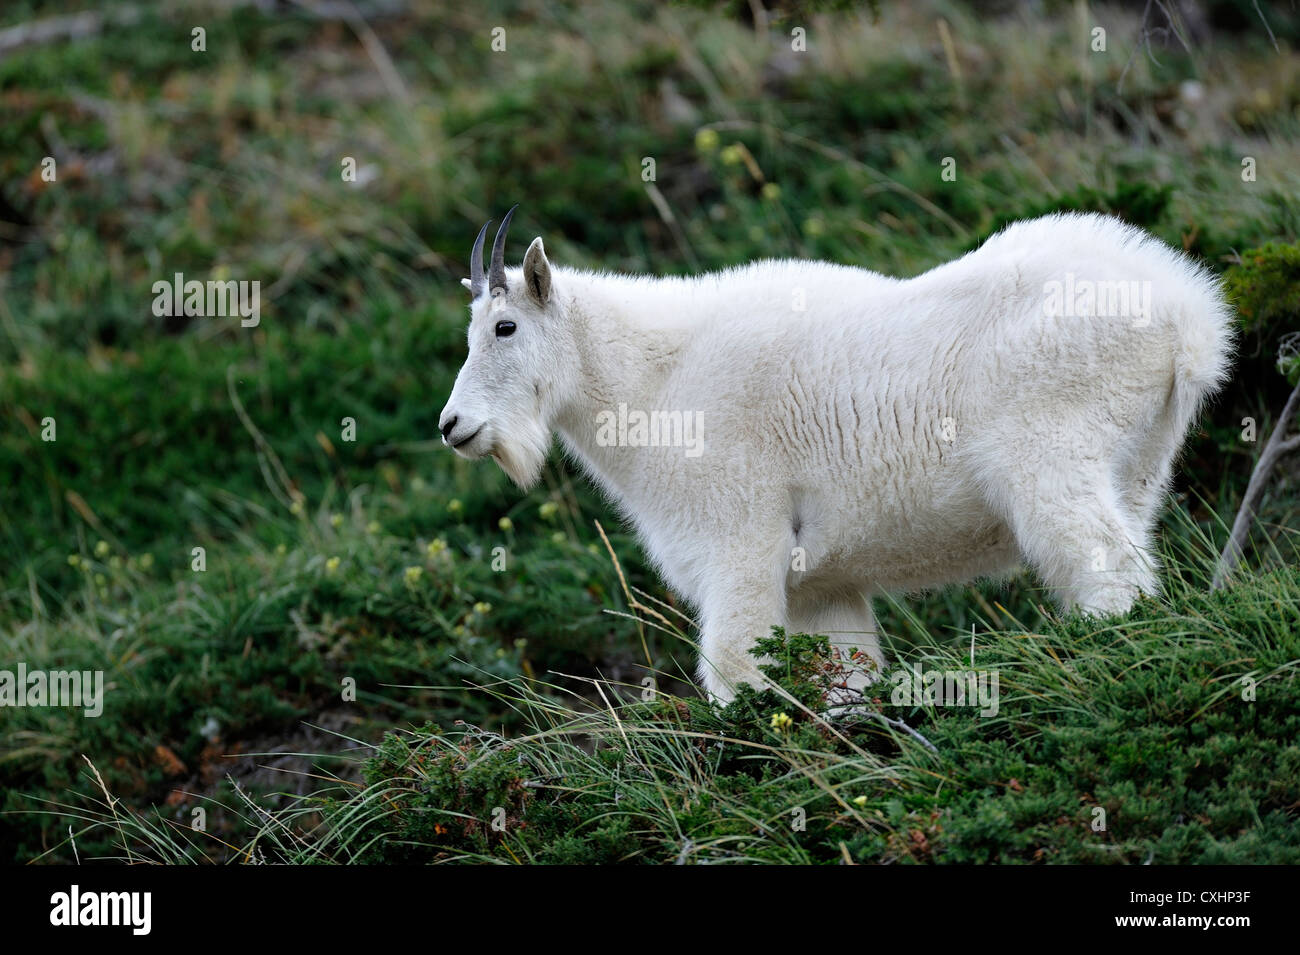 A mountain goat standing in green vegetation. - Stock Image